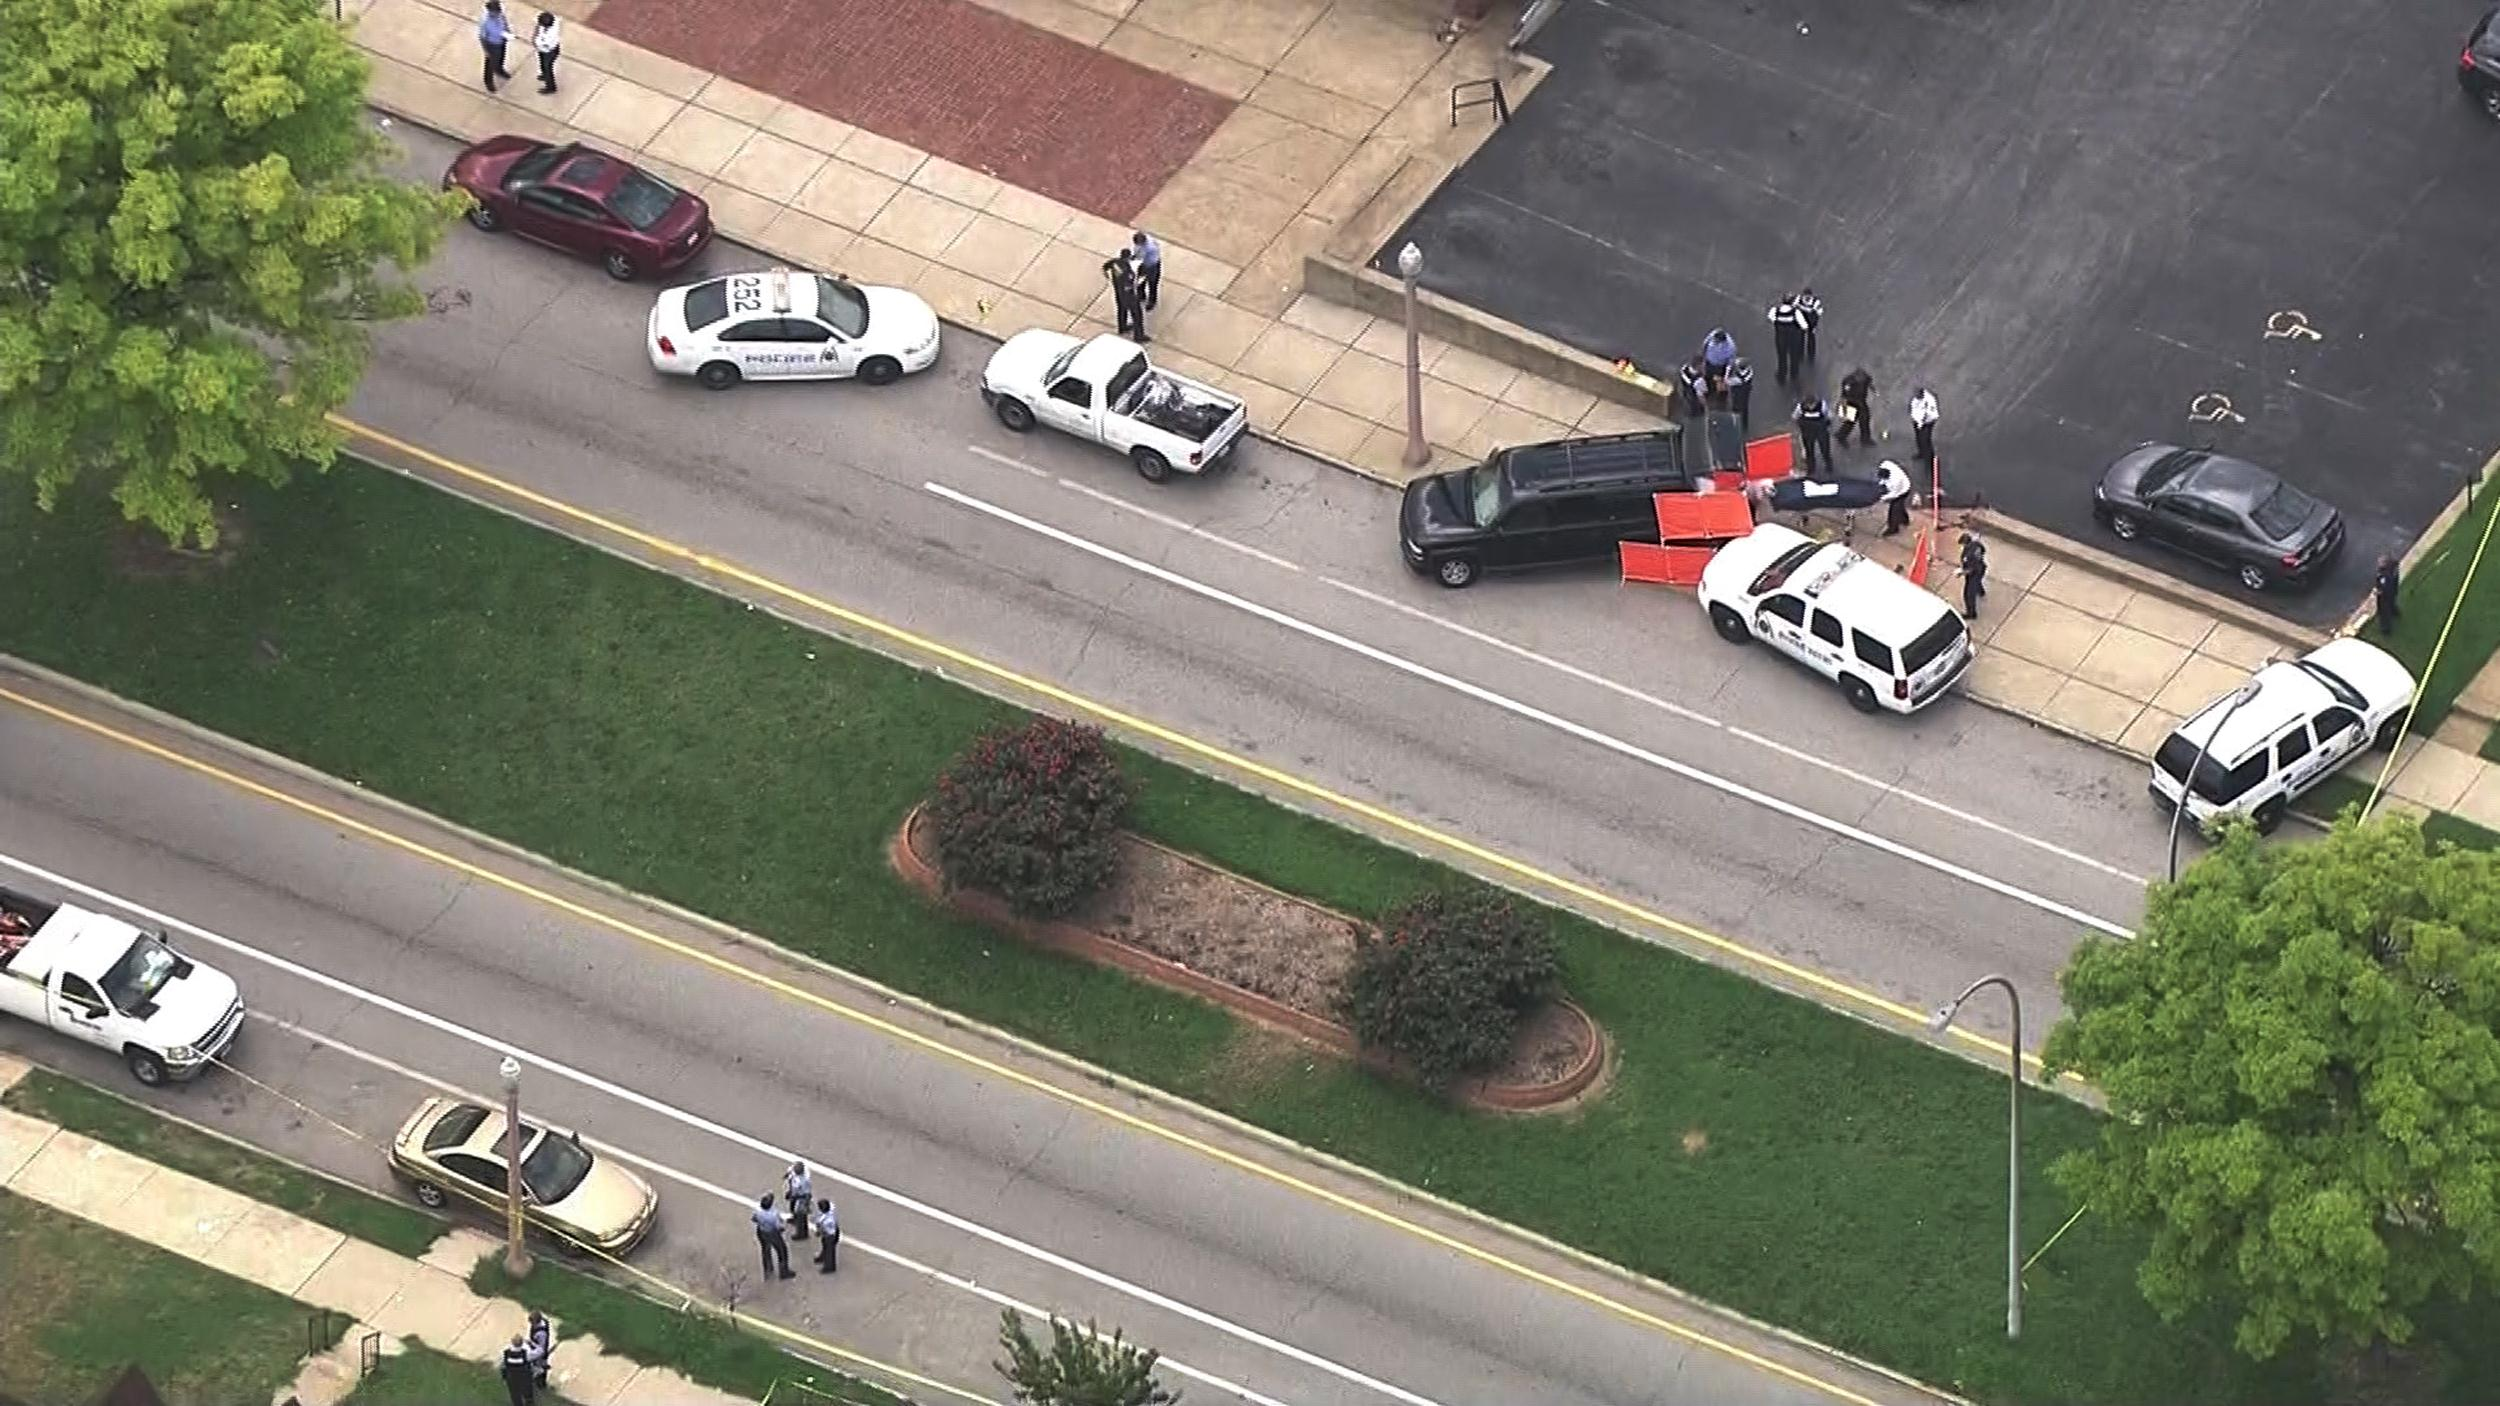 Image: Police at the scene of an officer-involved shooting in north St. Louis.